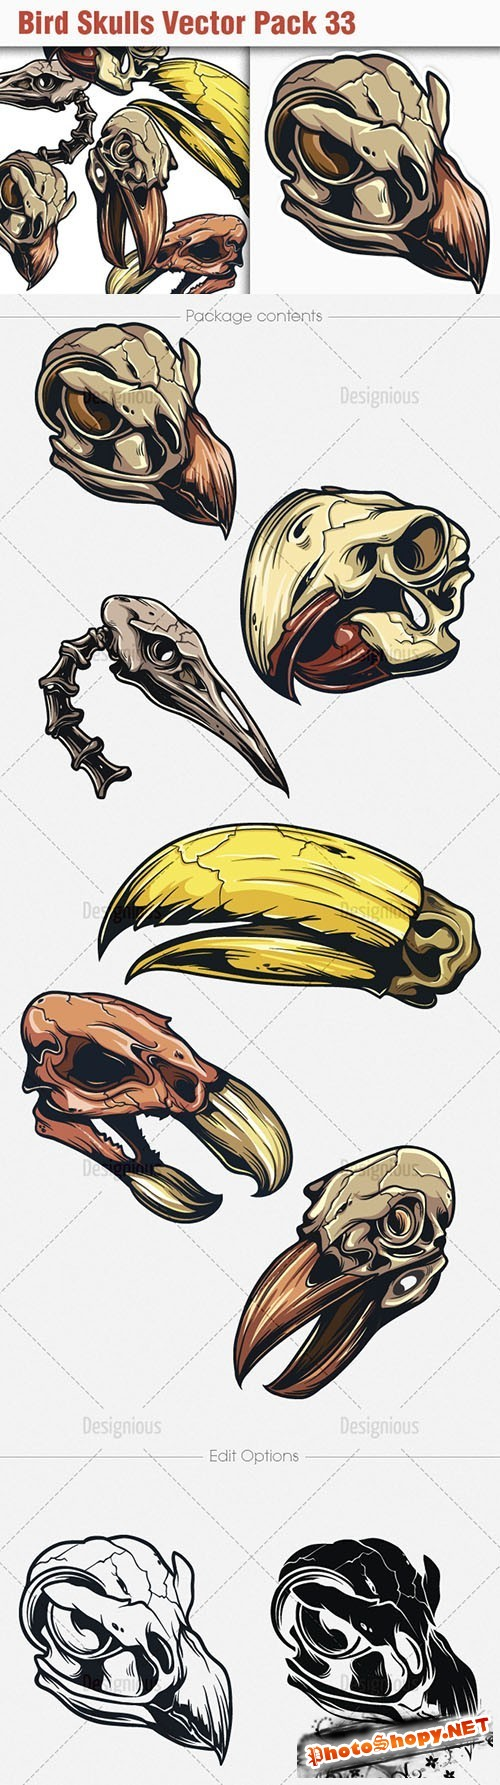 Bird Skulls Vector Illustrations Pack 33